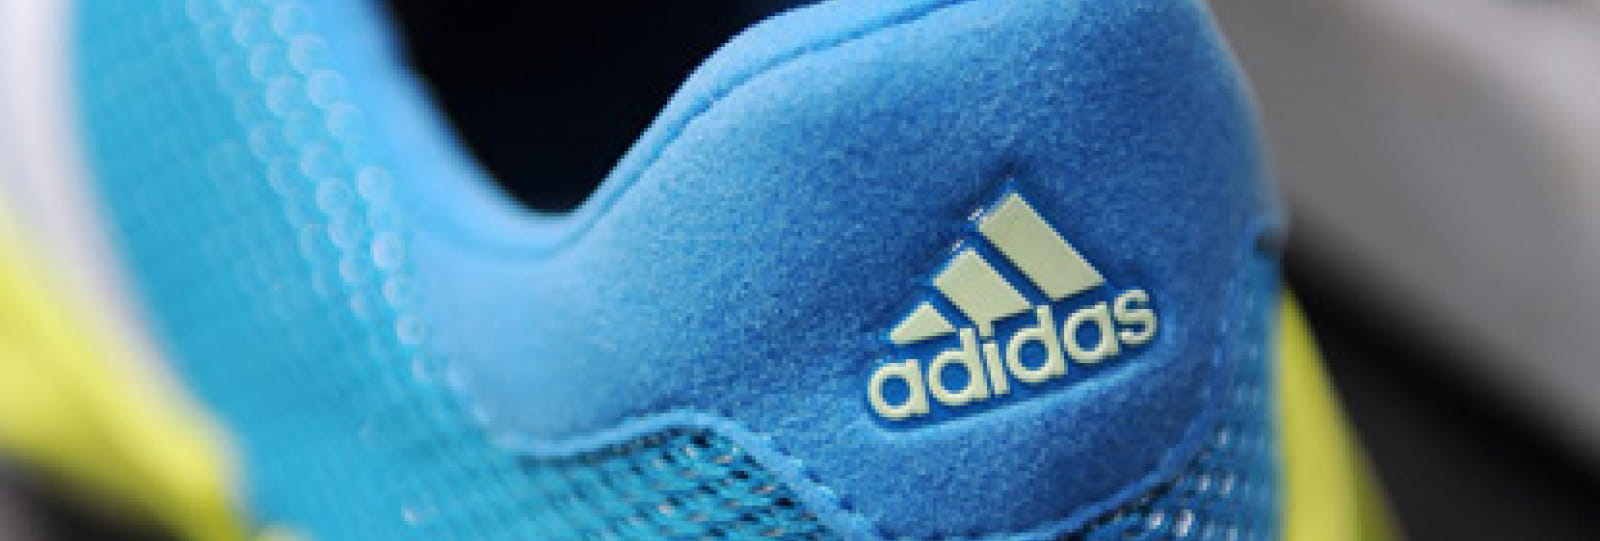 Marques Avenue - Adidas